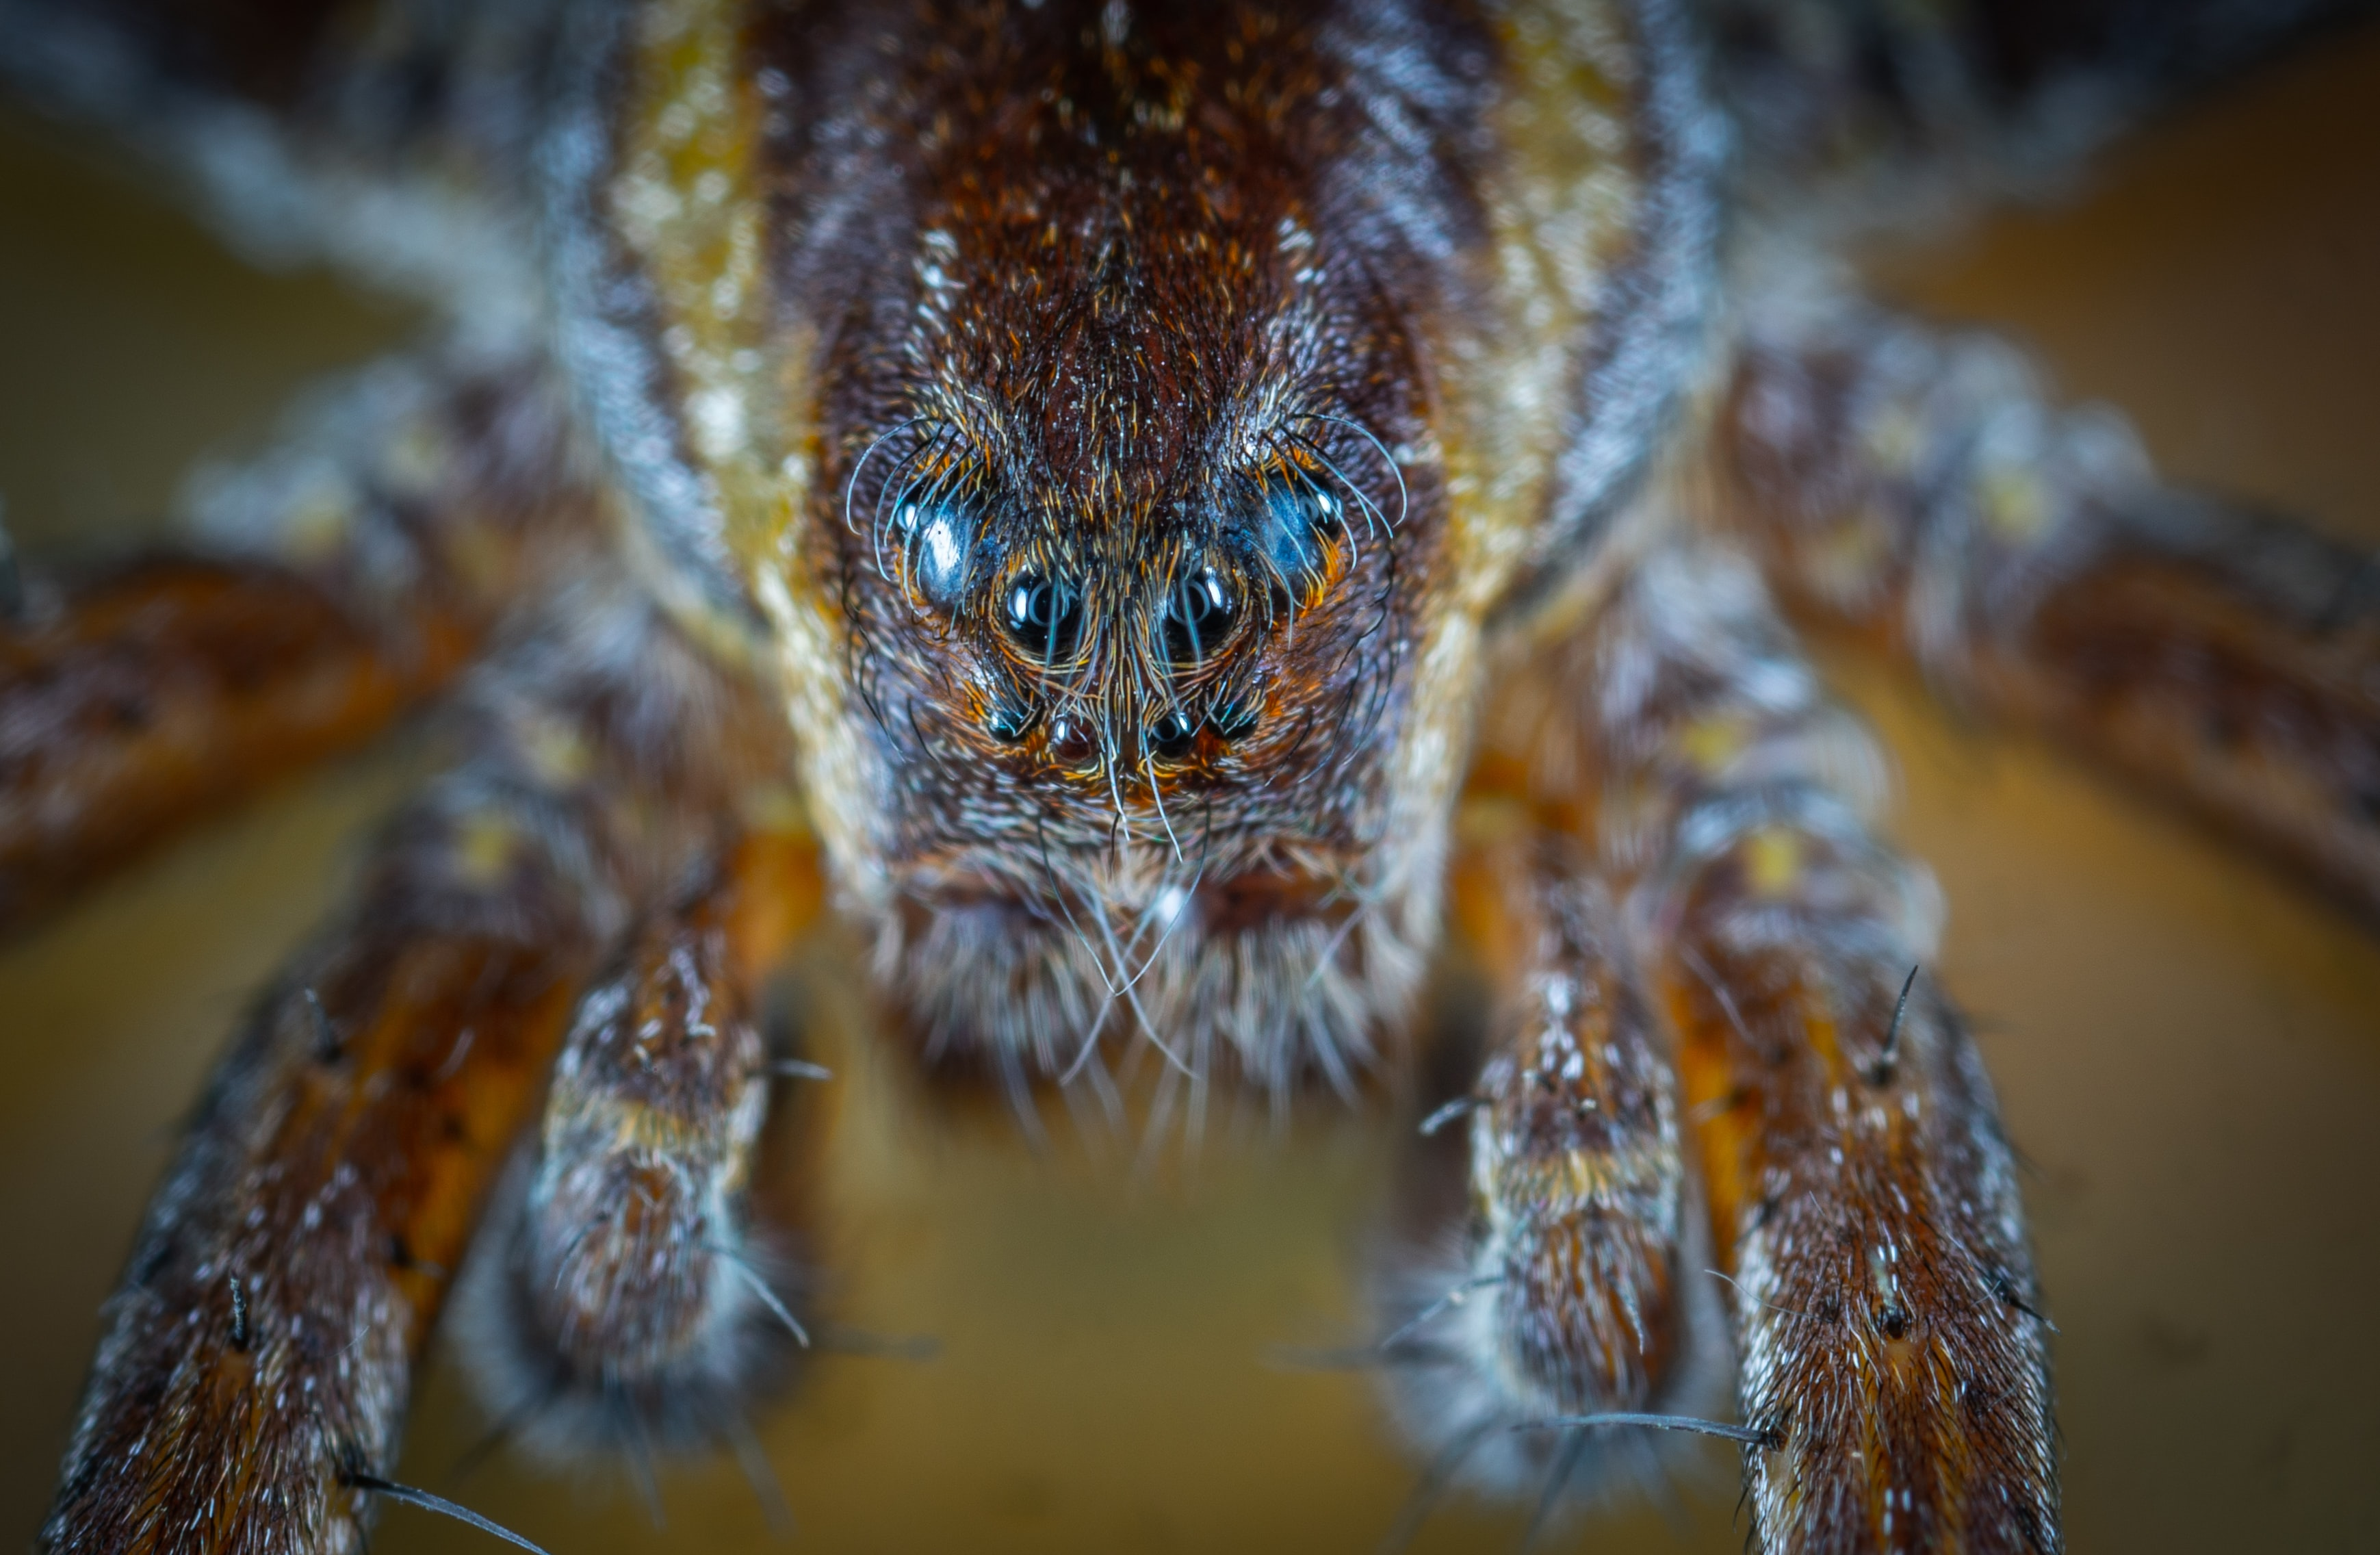 closeup photography of spider